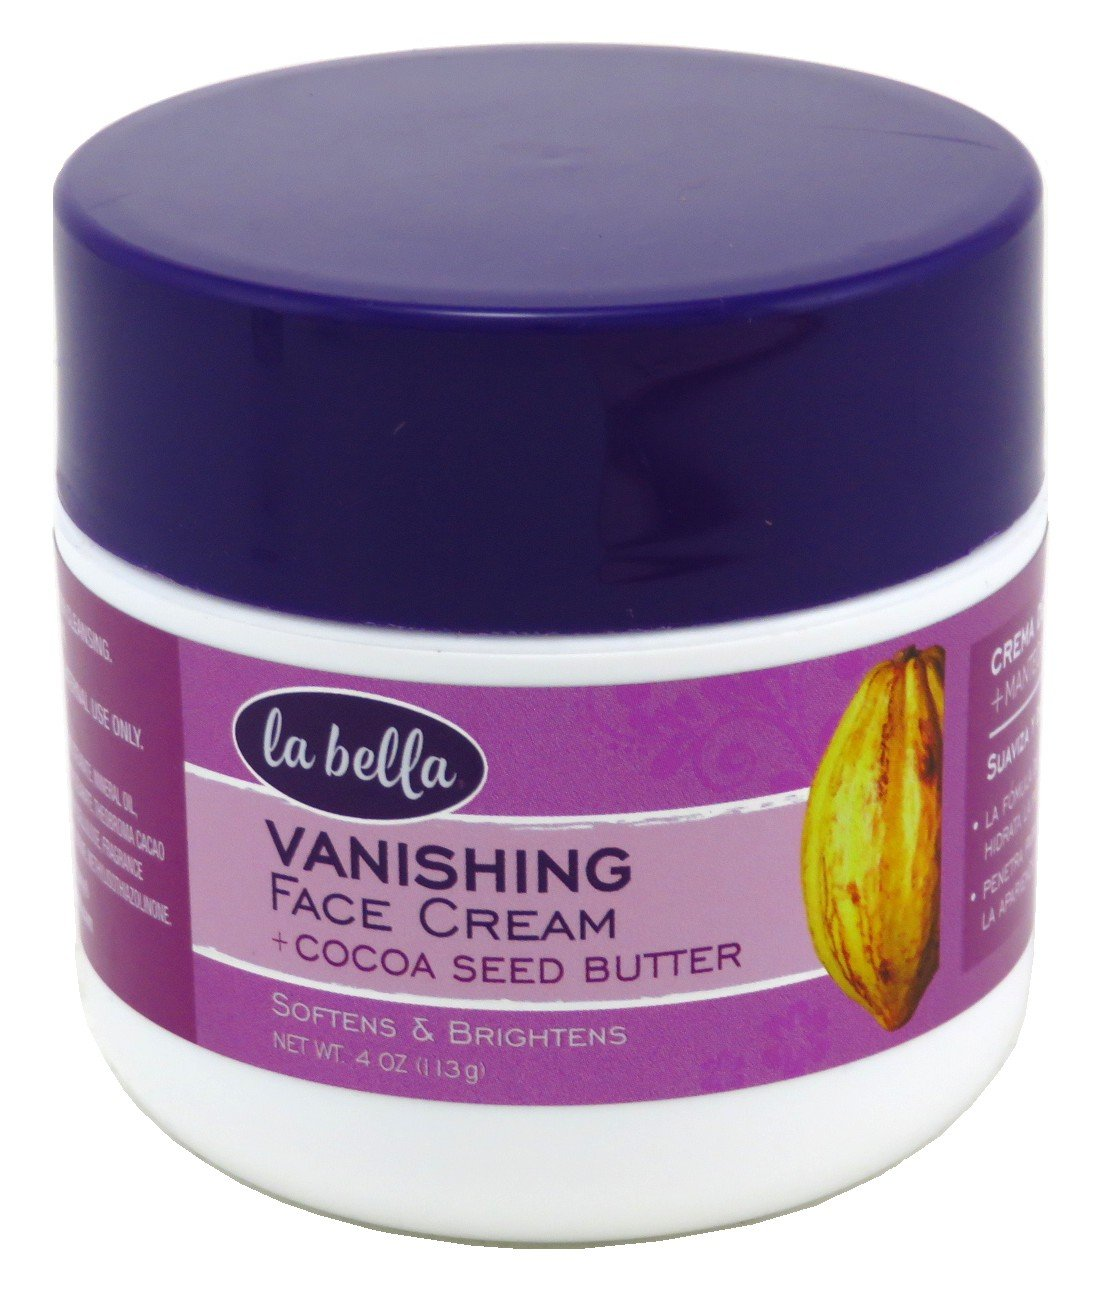 La Bella Vanishing Cream With Cocoa Seed Butter 4 Ounce